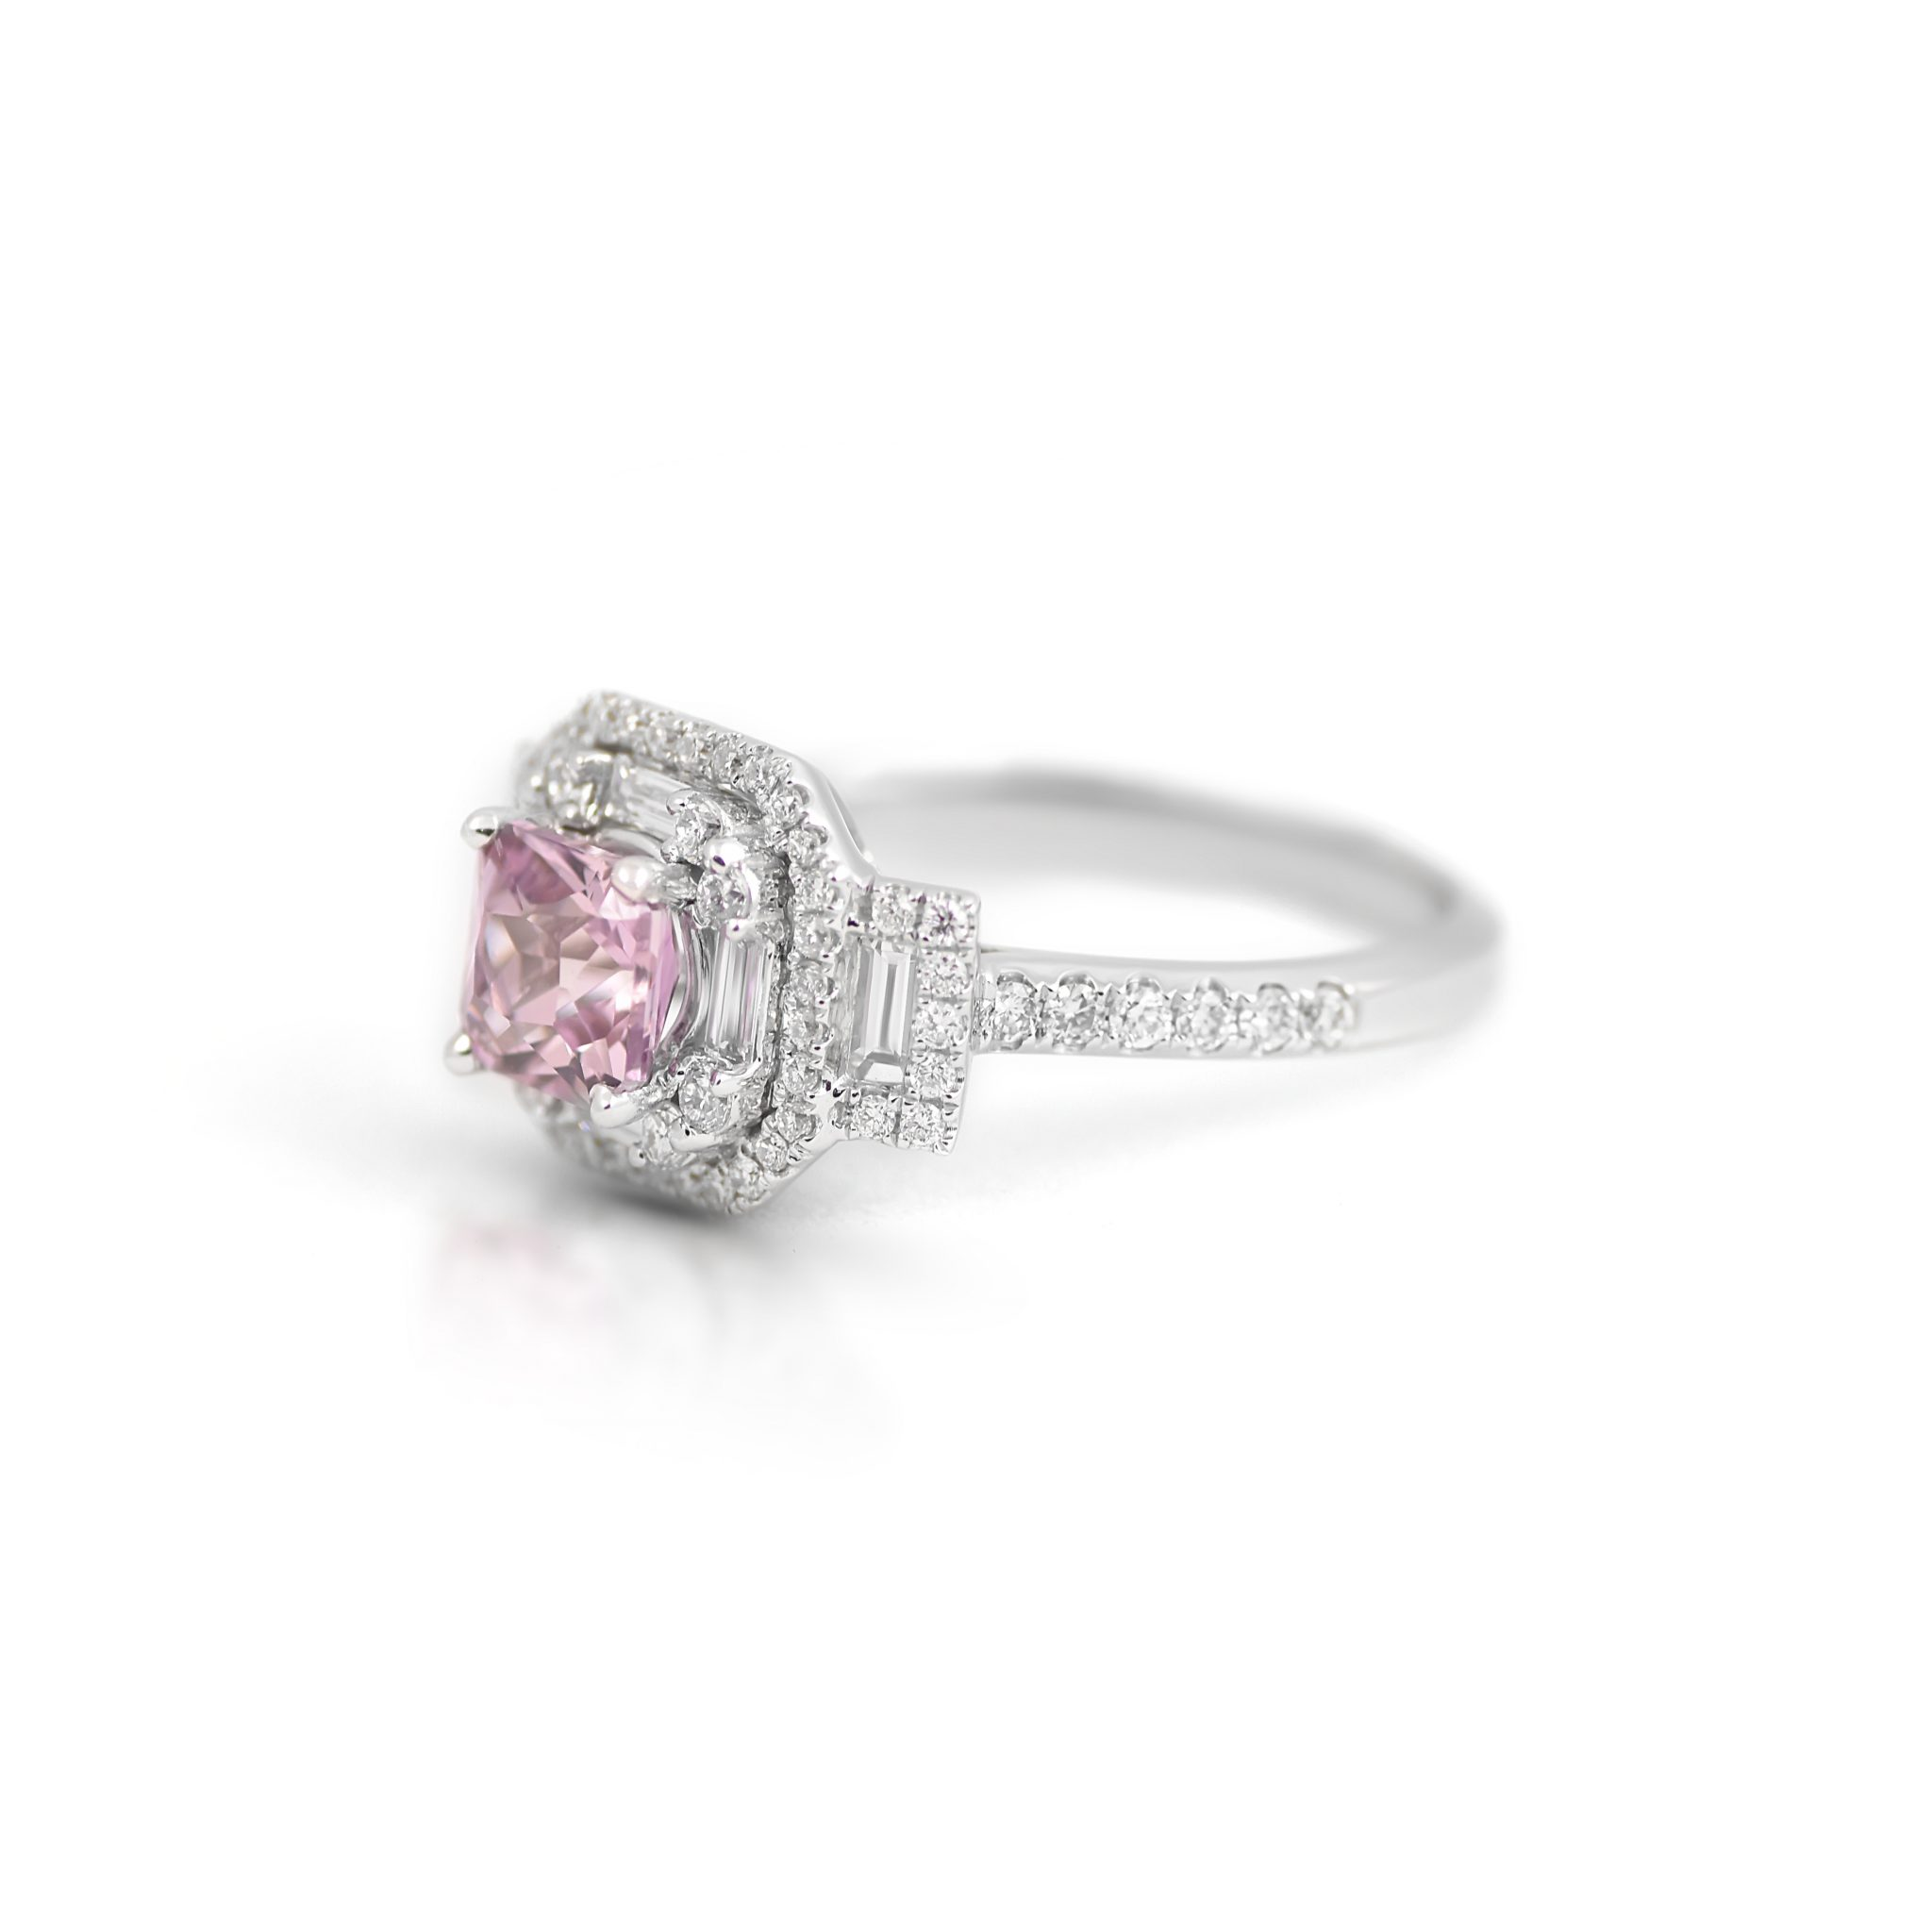 champagne engagement f best made ring show cut madequot rings yours off gold of finger frisch rose pre peach sapphire